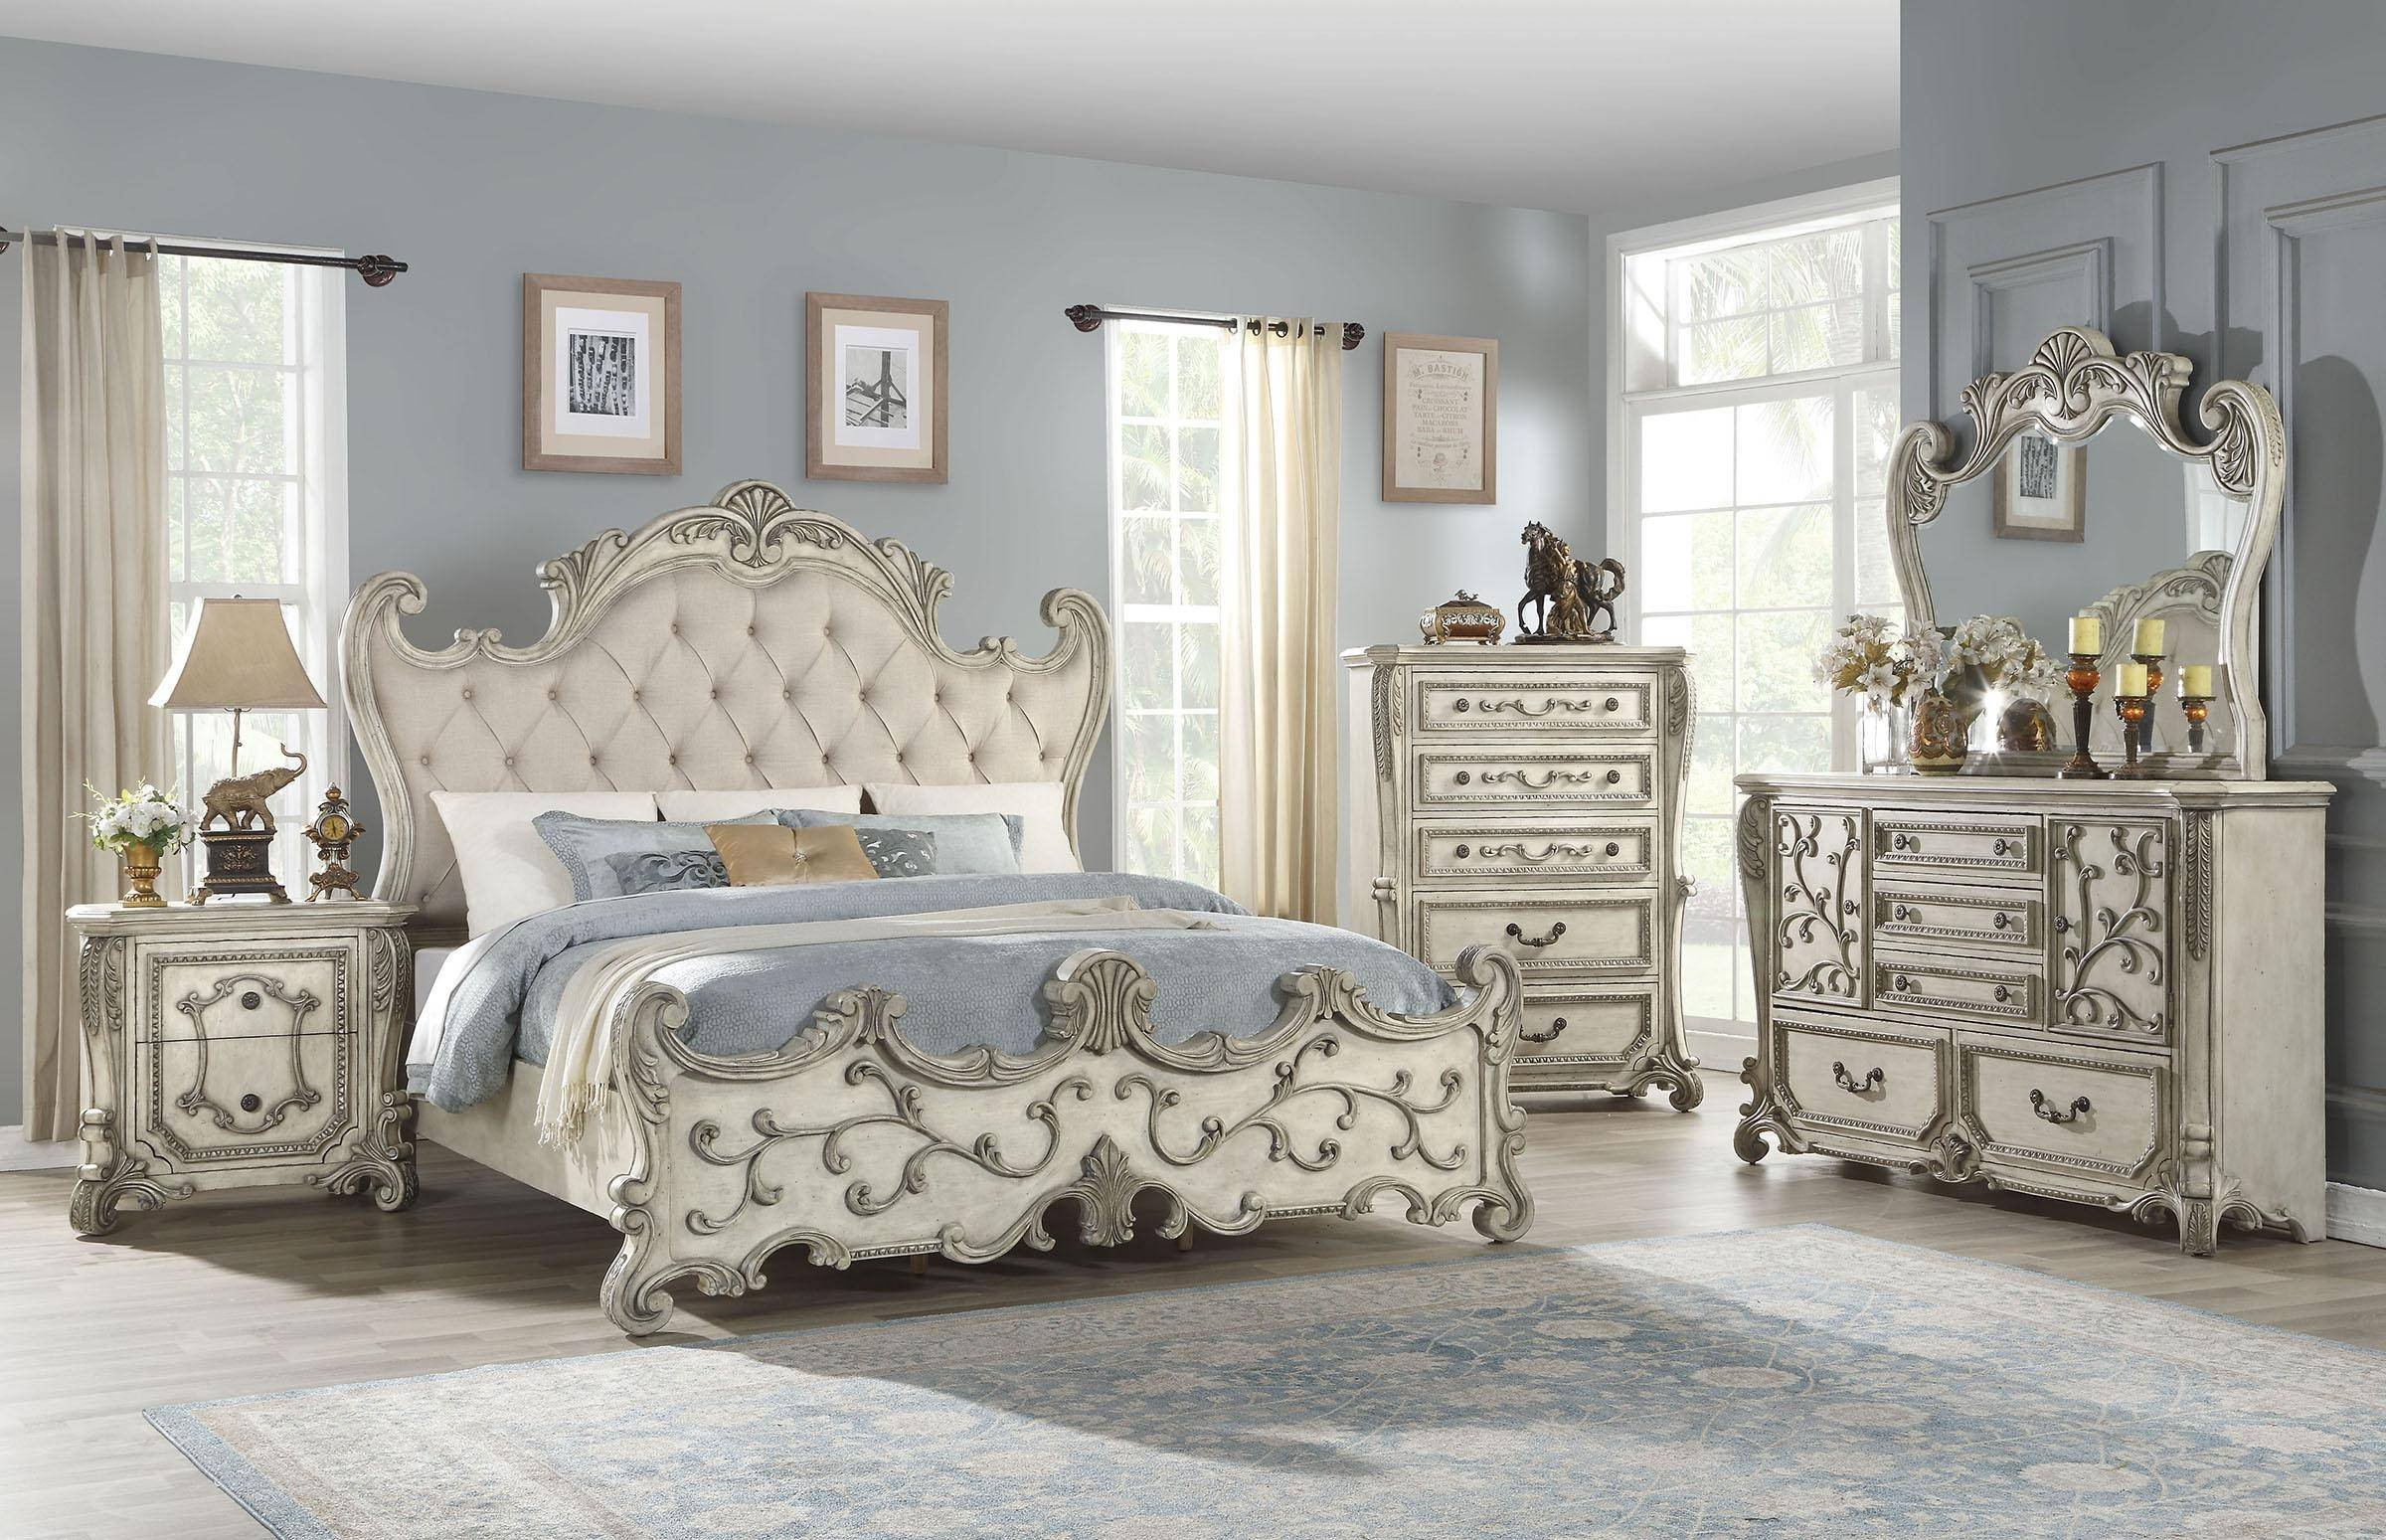 King Bedroom Set for Sale Lovely Luxury King Bedroom Set 5p W Chest Antique White Fabric